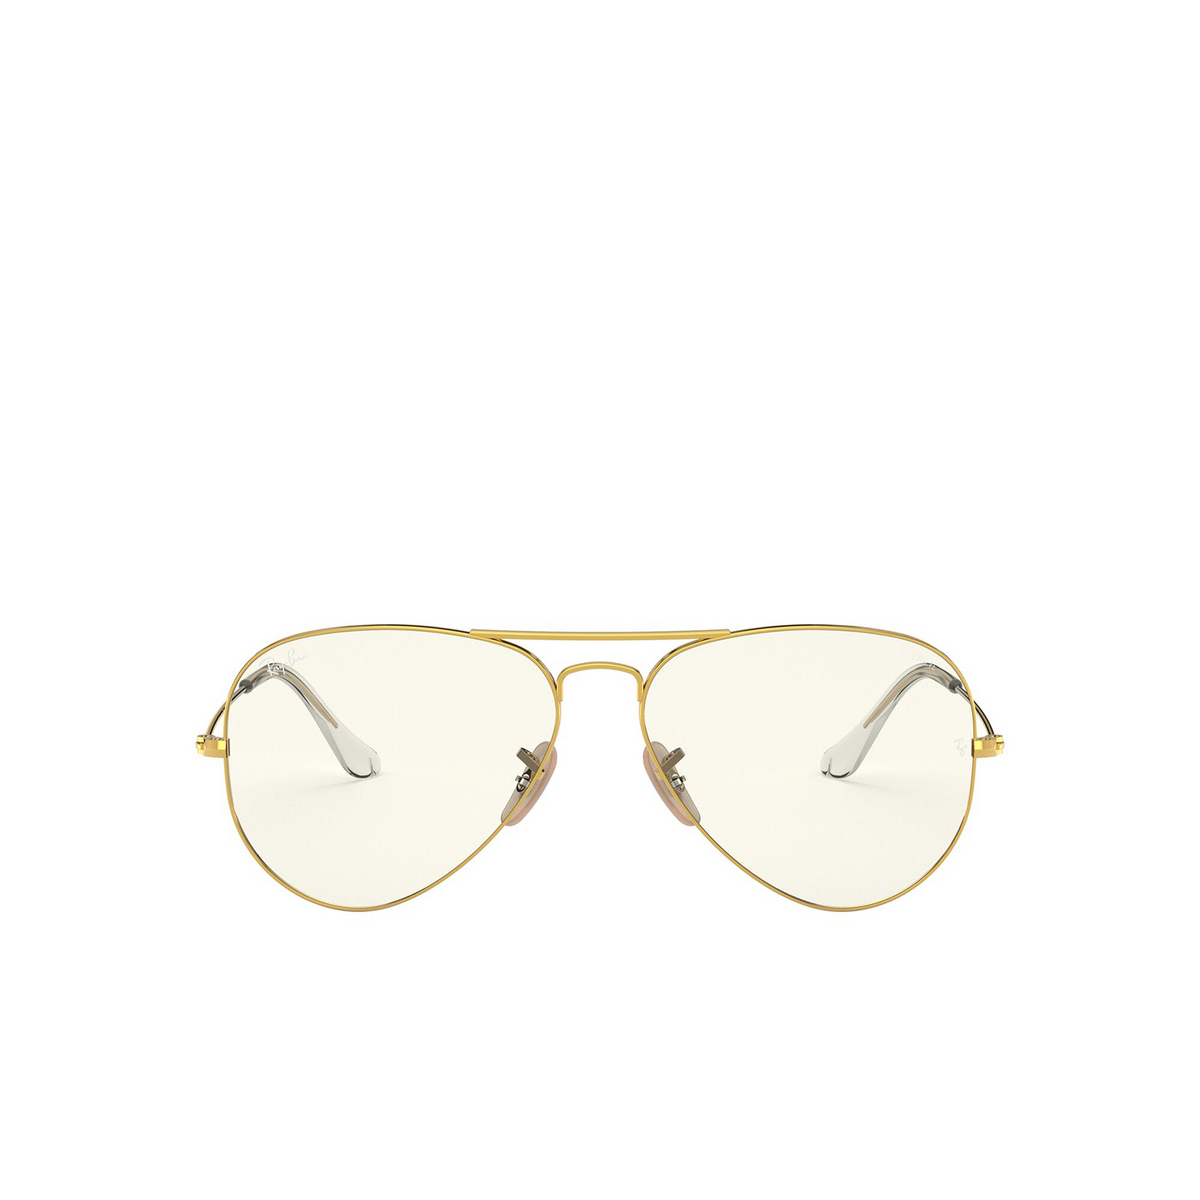 Ray-Ban® Aviator Sunglasses: Aviator Large Metal RB3025 color Arista 001/5F - front view.